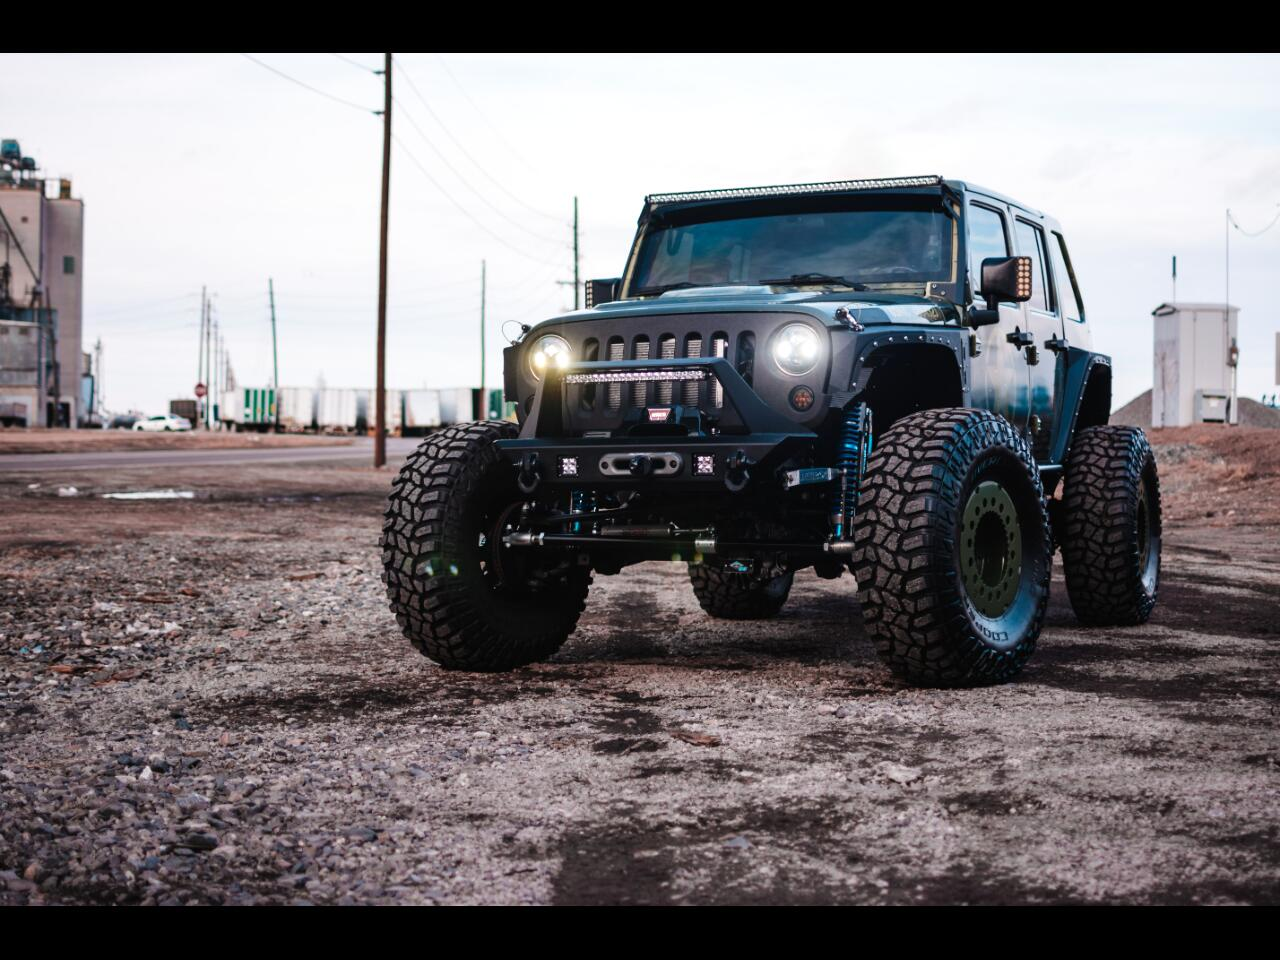 2007 Jeep Wrangler 4WD 4dr Unlimited Rubicon 427 (7.0L) SUPERCHARGED